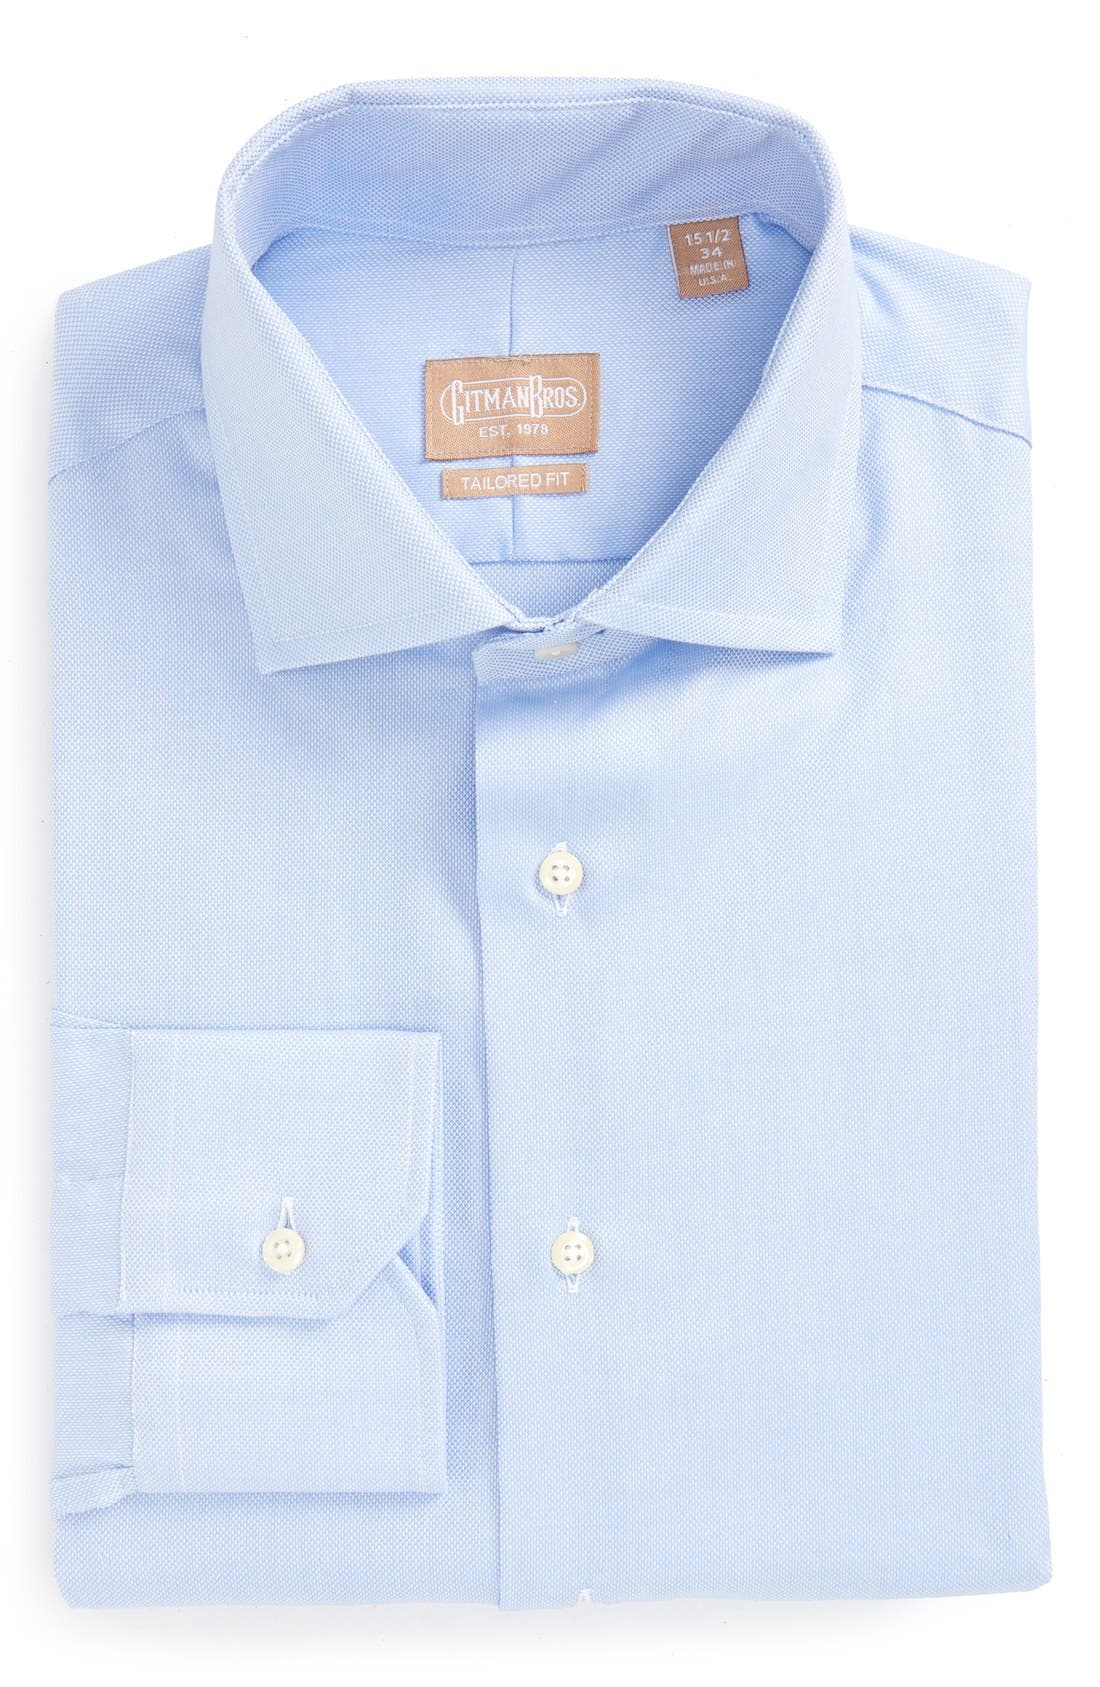 Royal Oxford Tailored Fit Dress Shirt,                         Main,                         color, BLUE